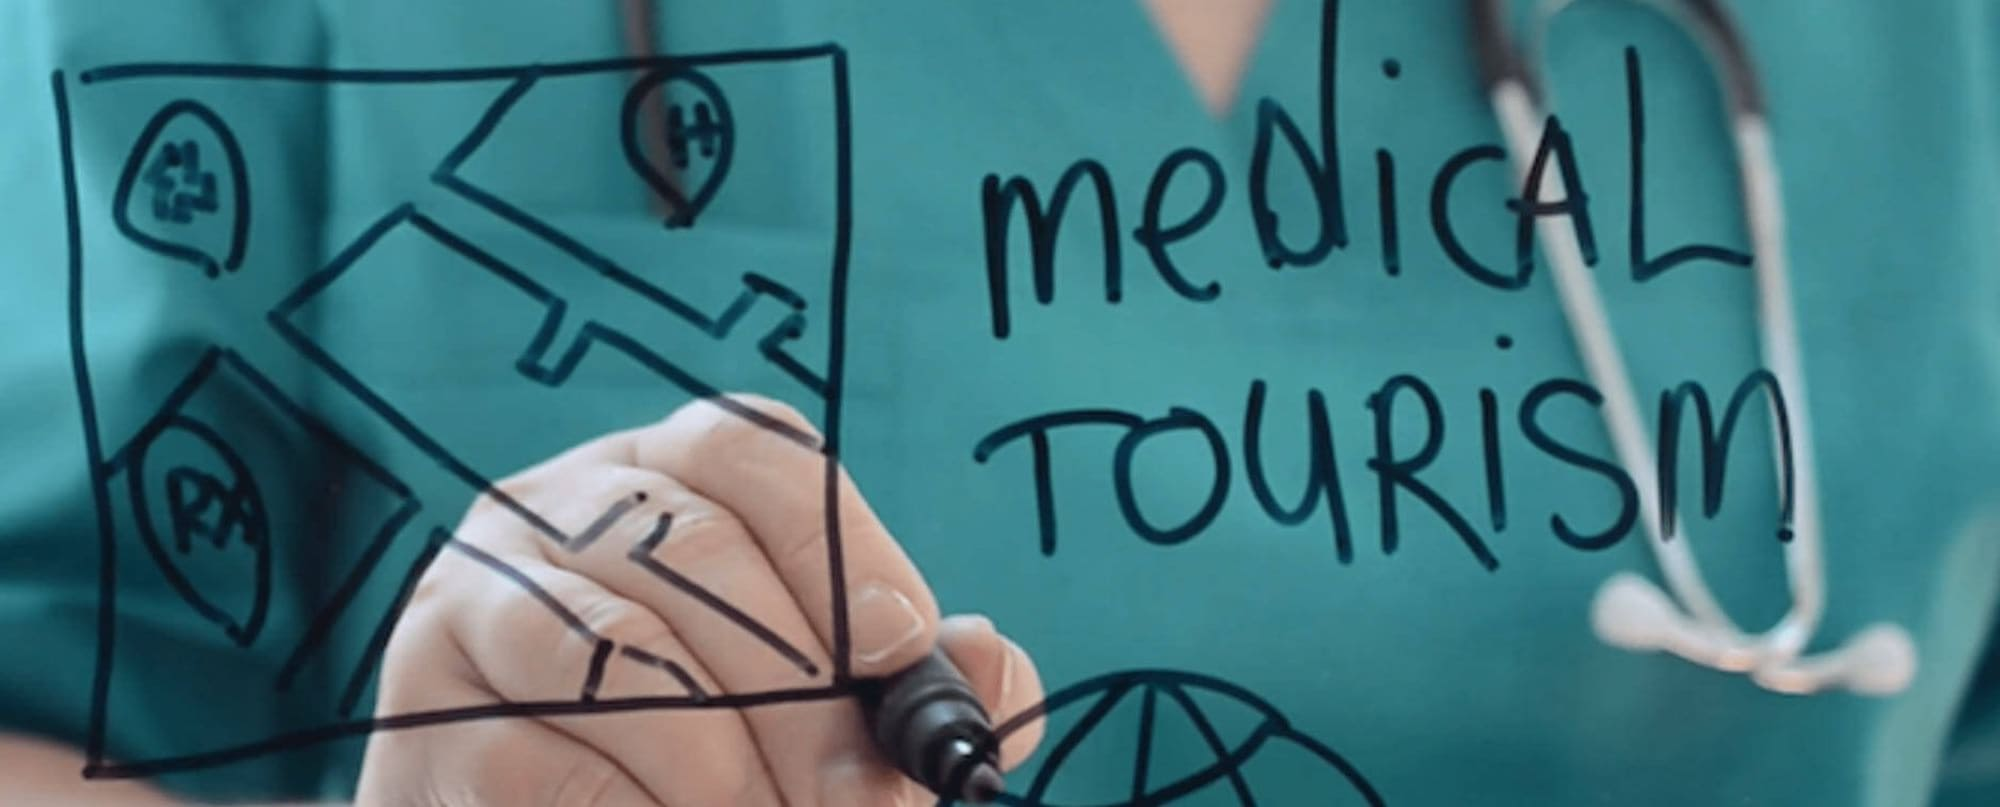 You are invited to Turkey for medical tourism for healthcare